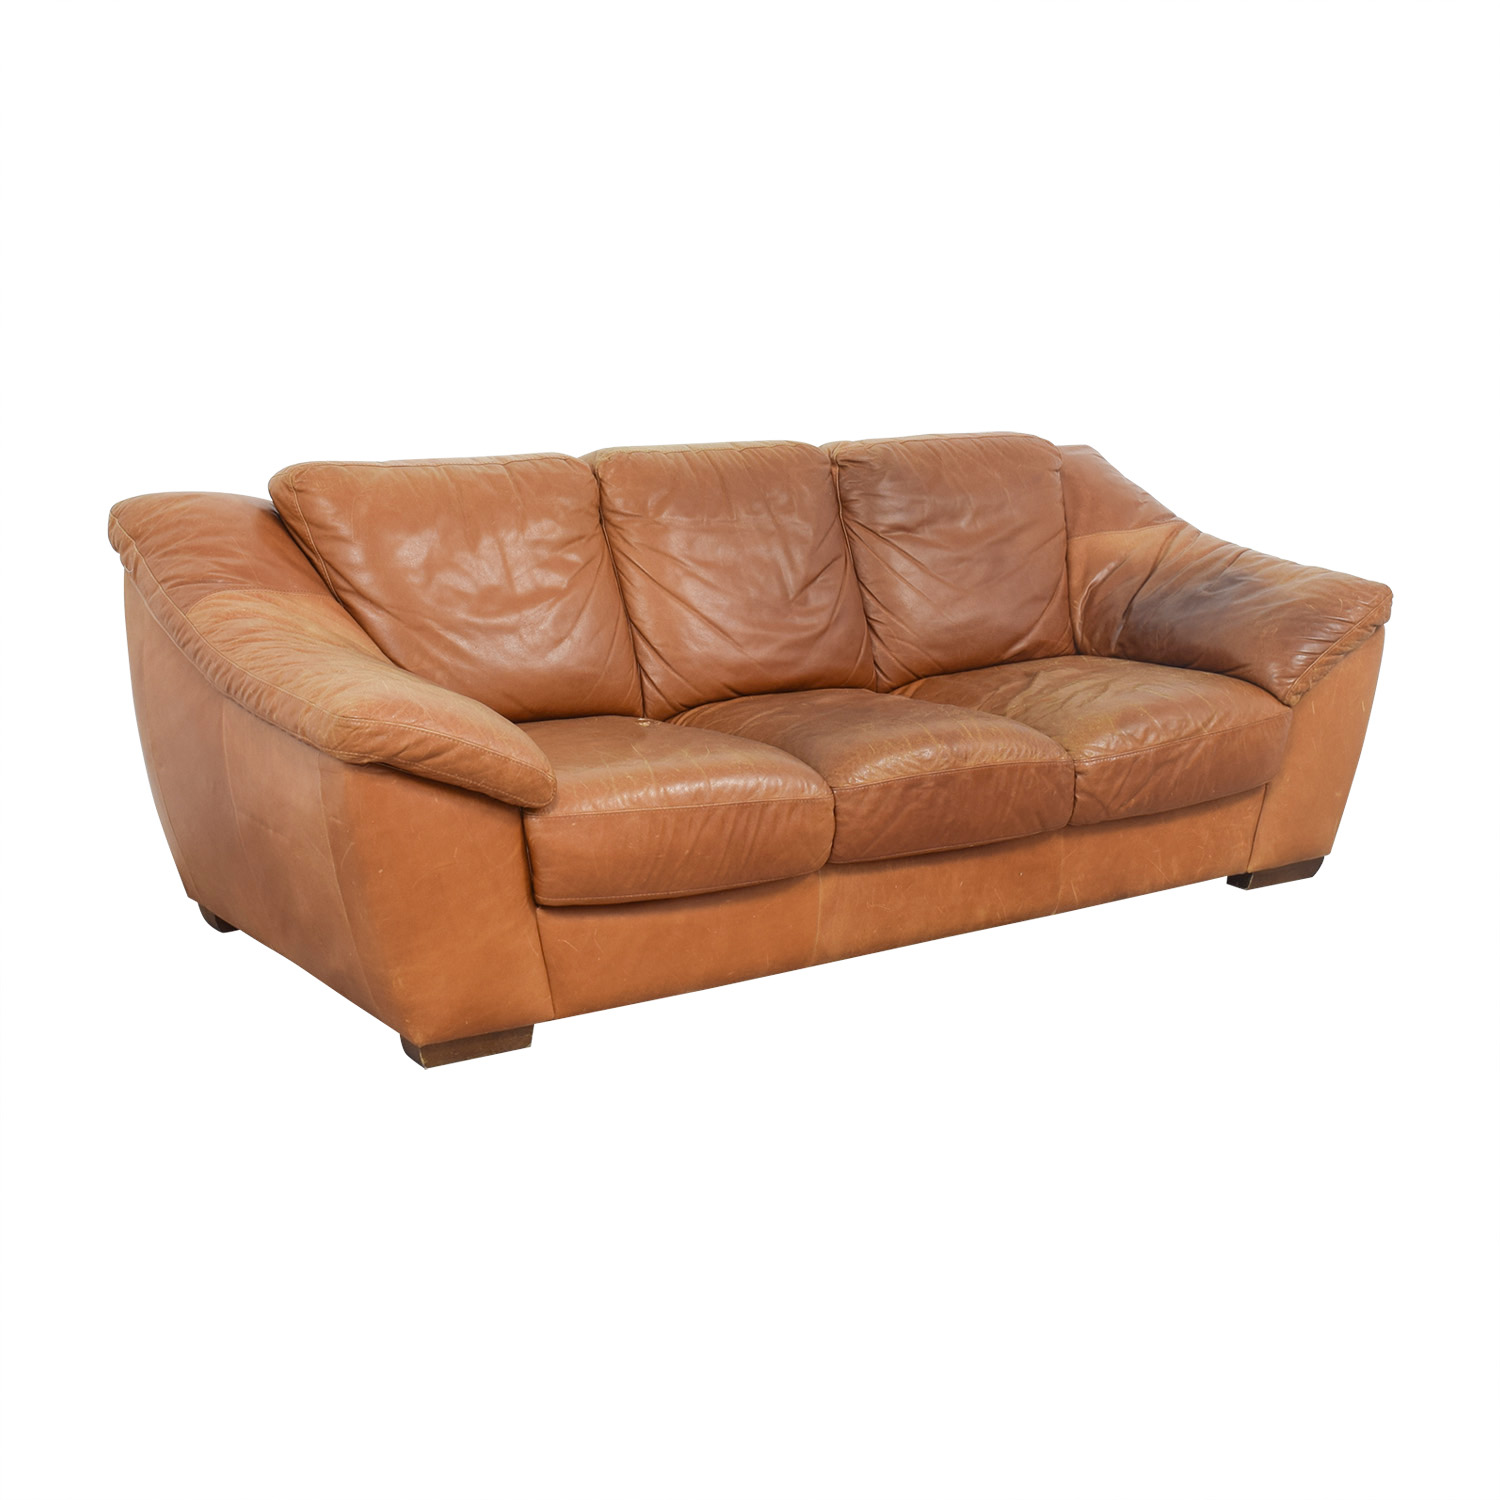 Cushions For Brown Leather Sofas 90 Off Nicoletti Nicoletti Brown Leather Three Cushion